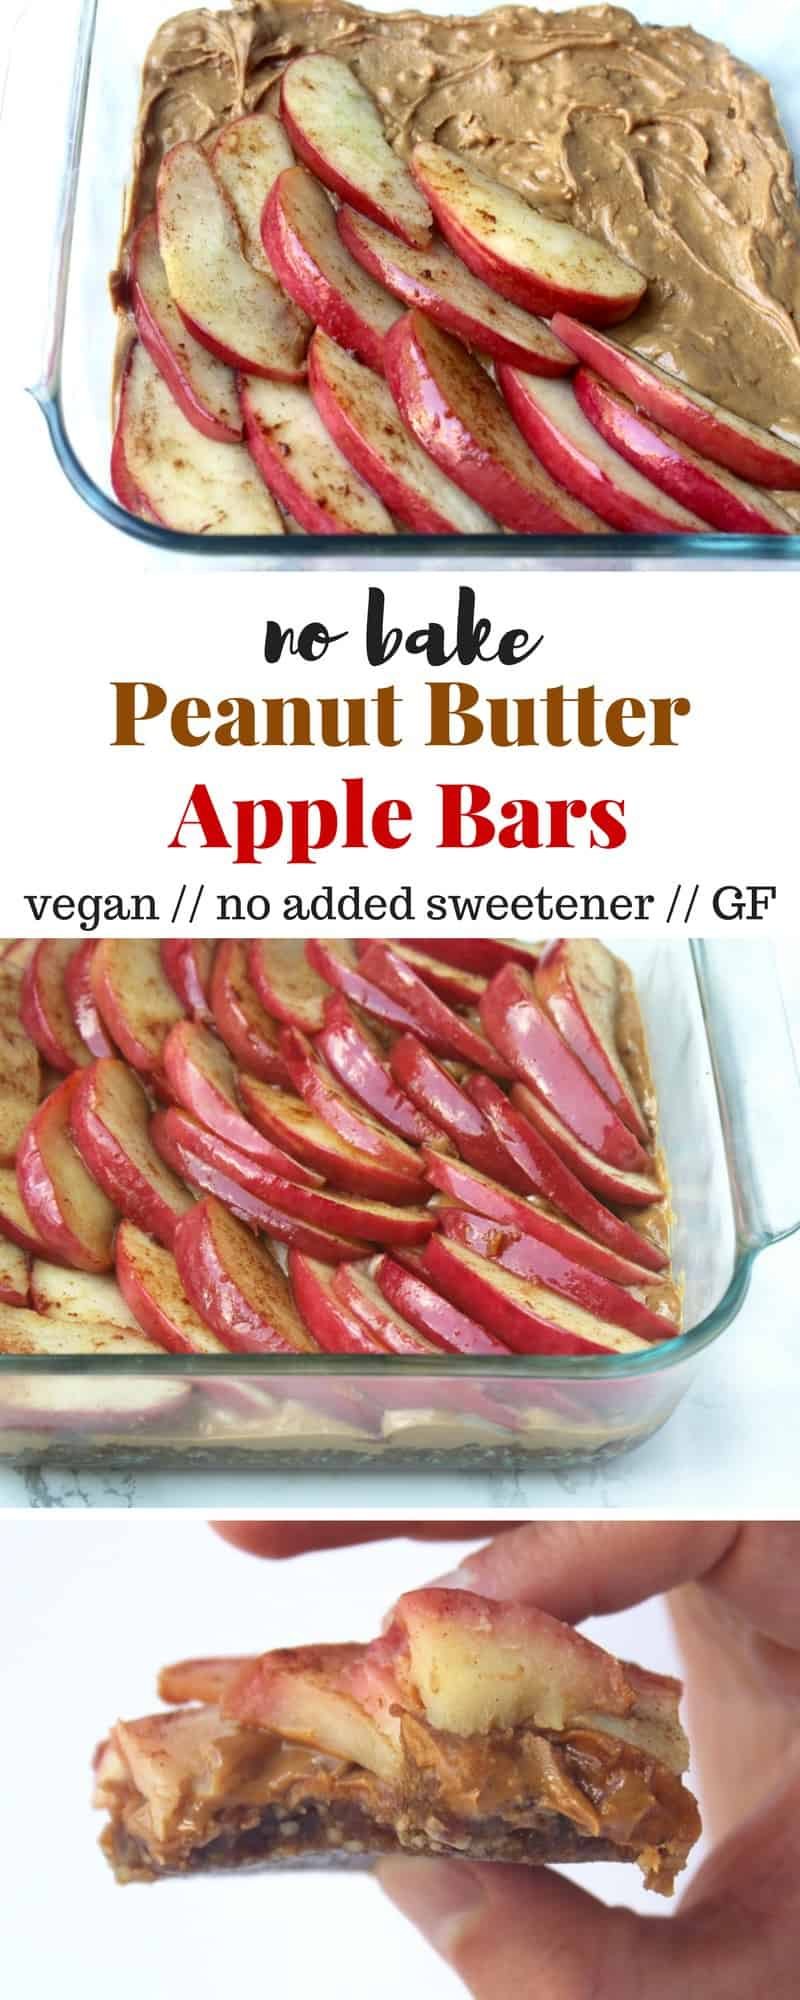 No Bake Peanut Butter Apple Bars